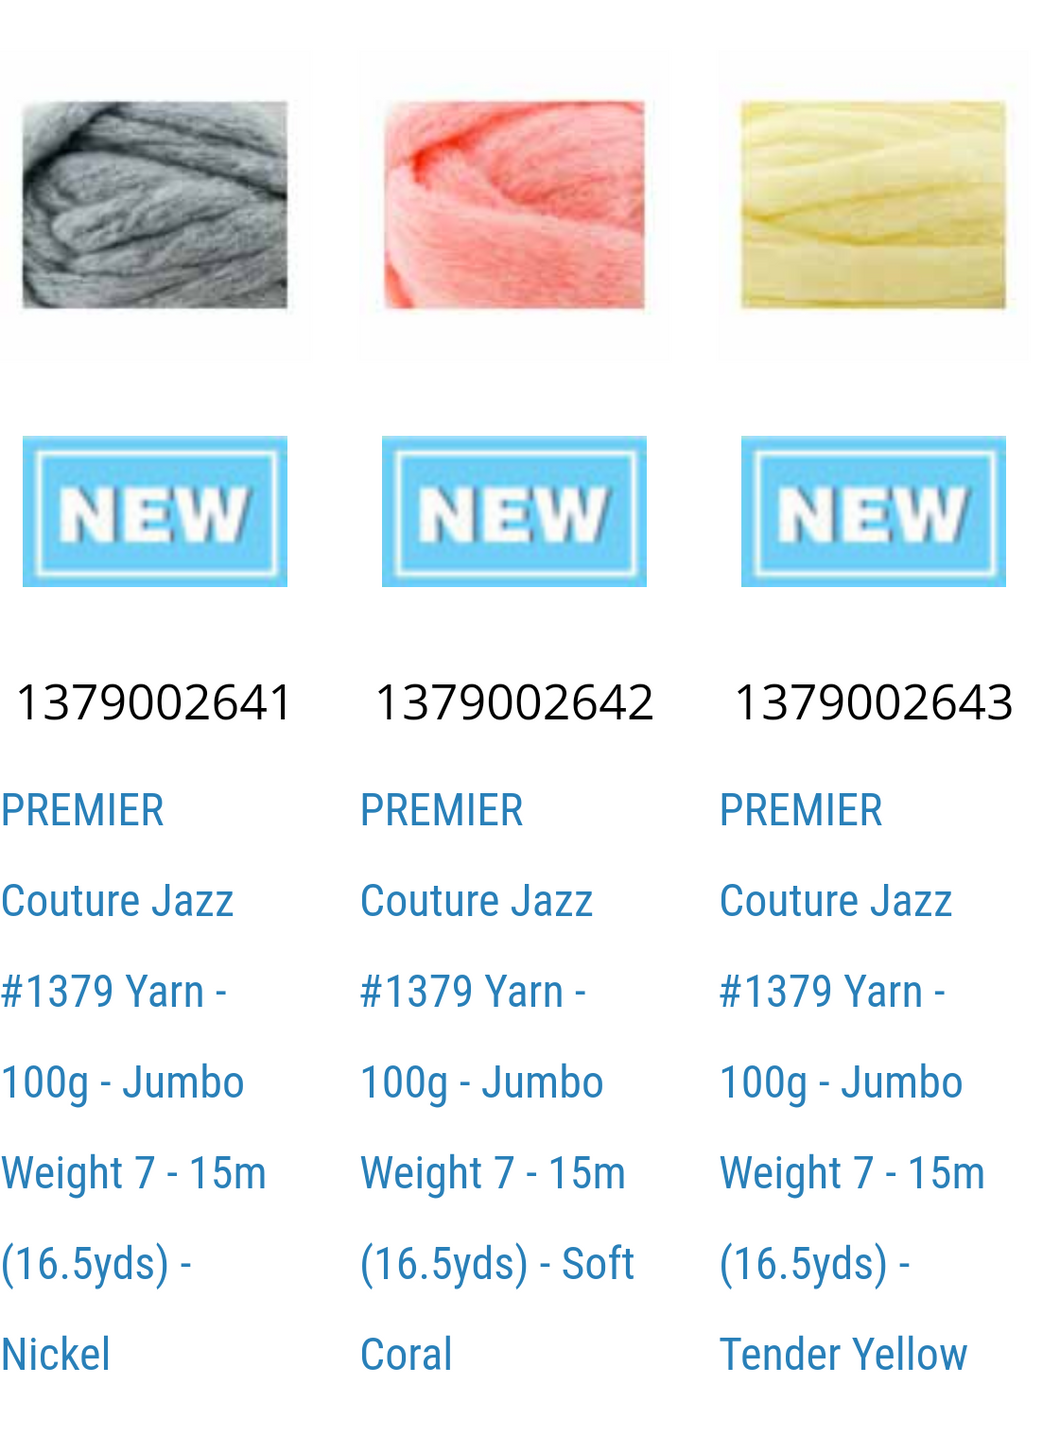 Preorder - chunky arm knit blanket kits (12 ball kit)